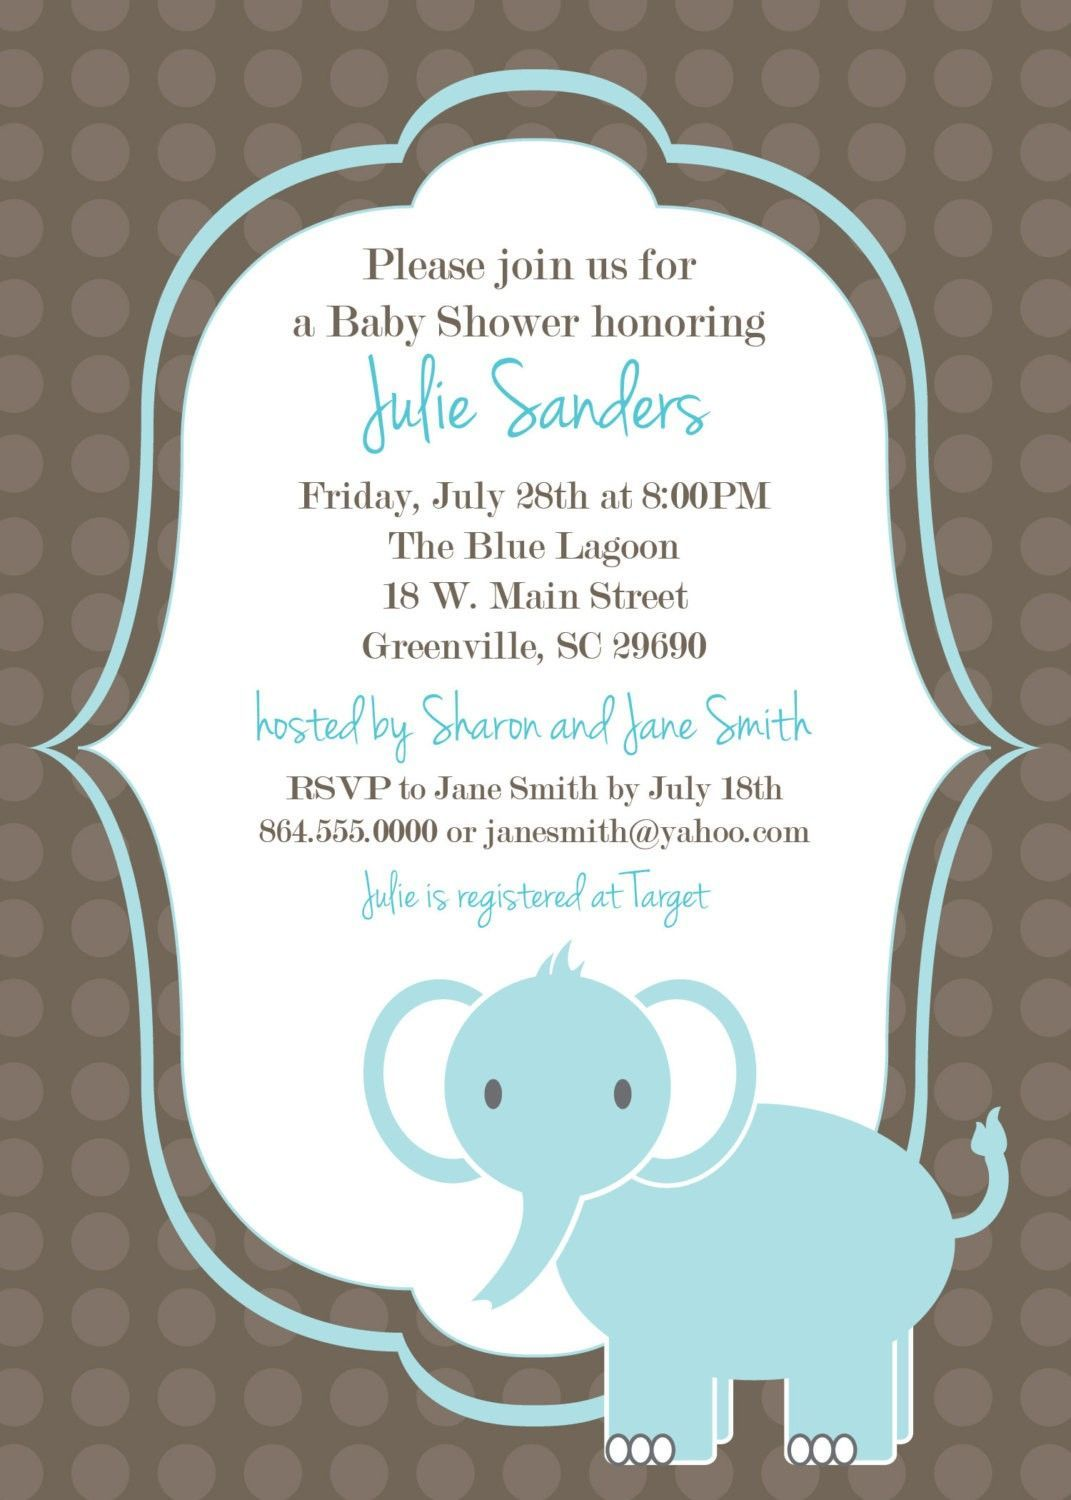 000 Awful Baby Shower Template Word Idea  Printable Search Free InvitationFull